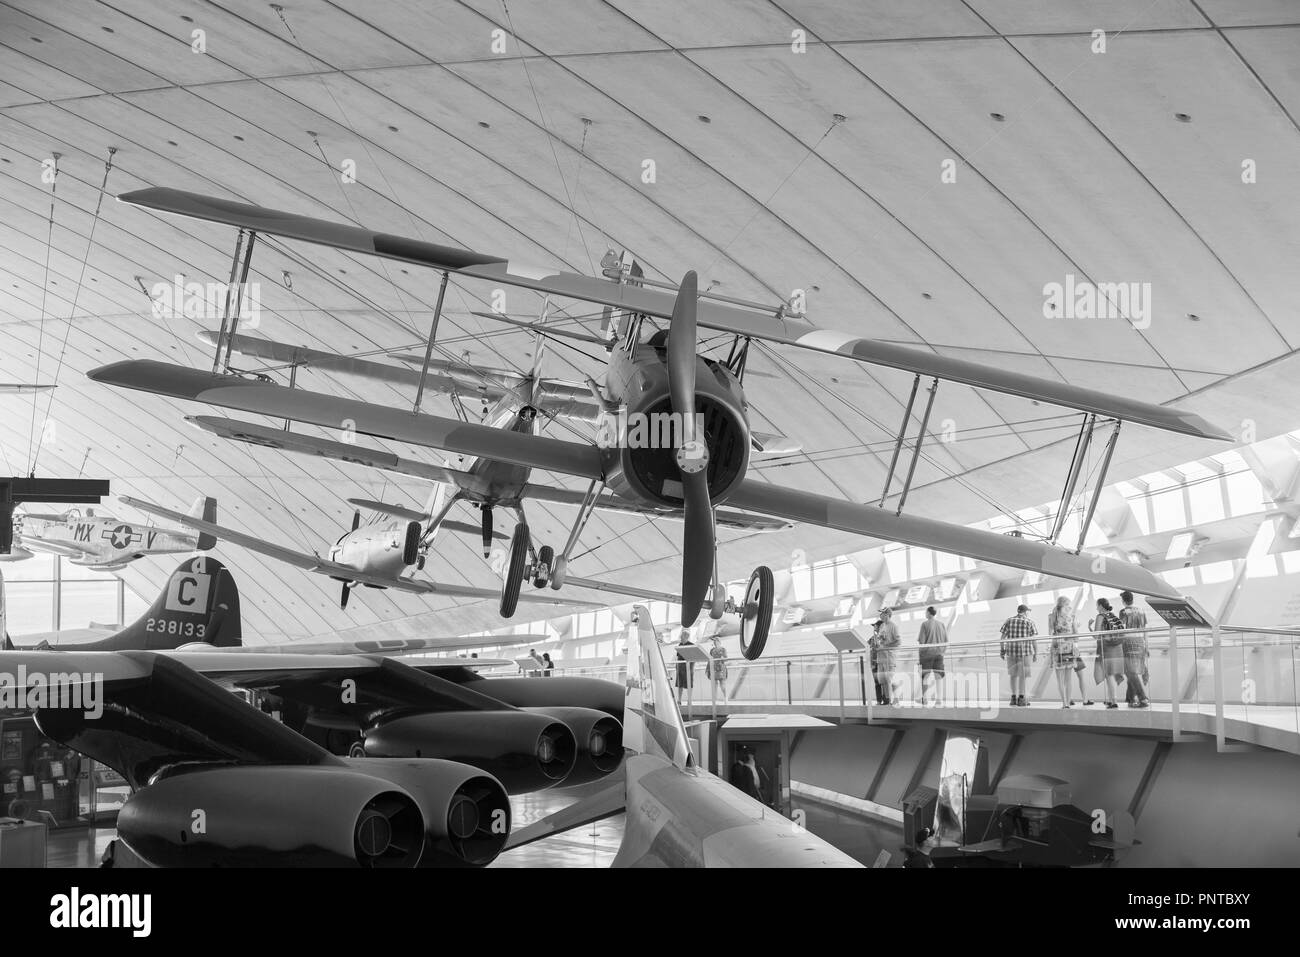 Mixture of U.S and British military Aircraft on display in Duxford Museum - Stock Image